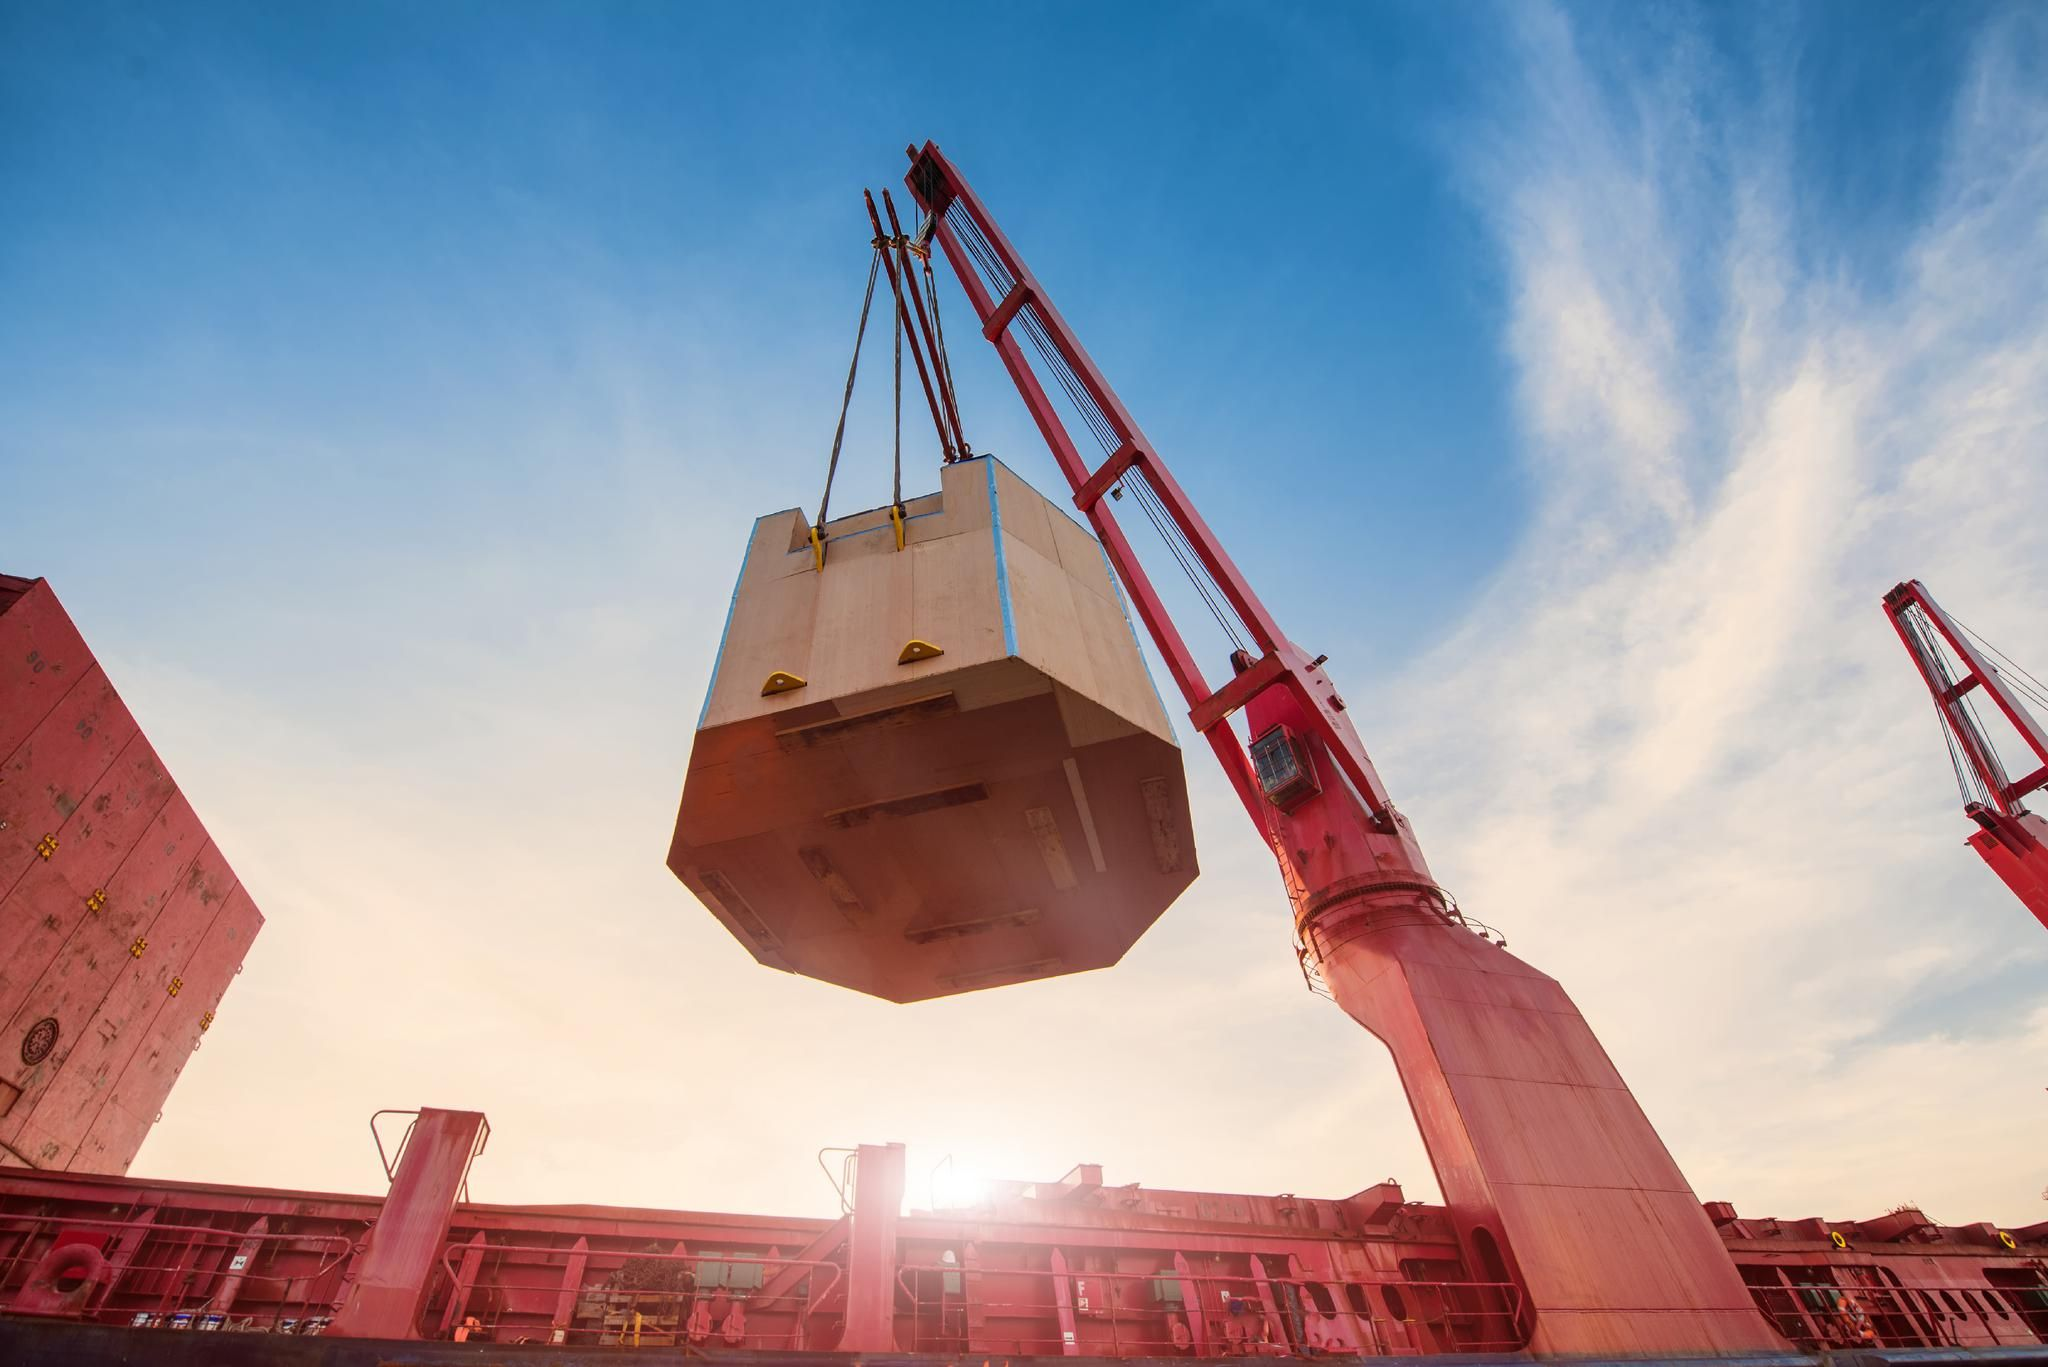 Lifting, Handling, Transportation and Storage Systems